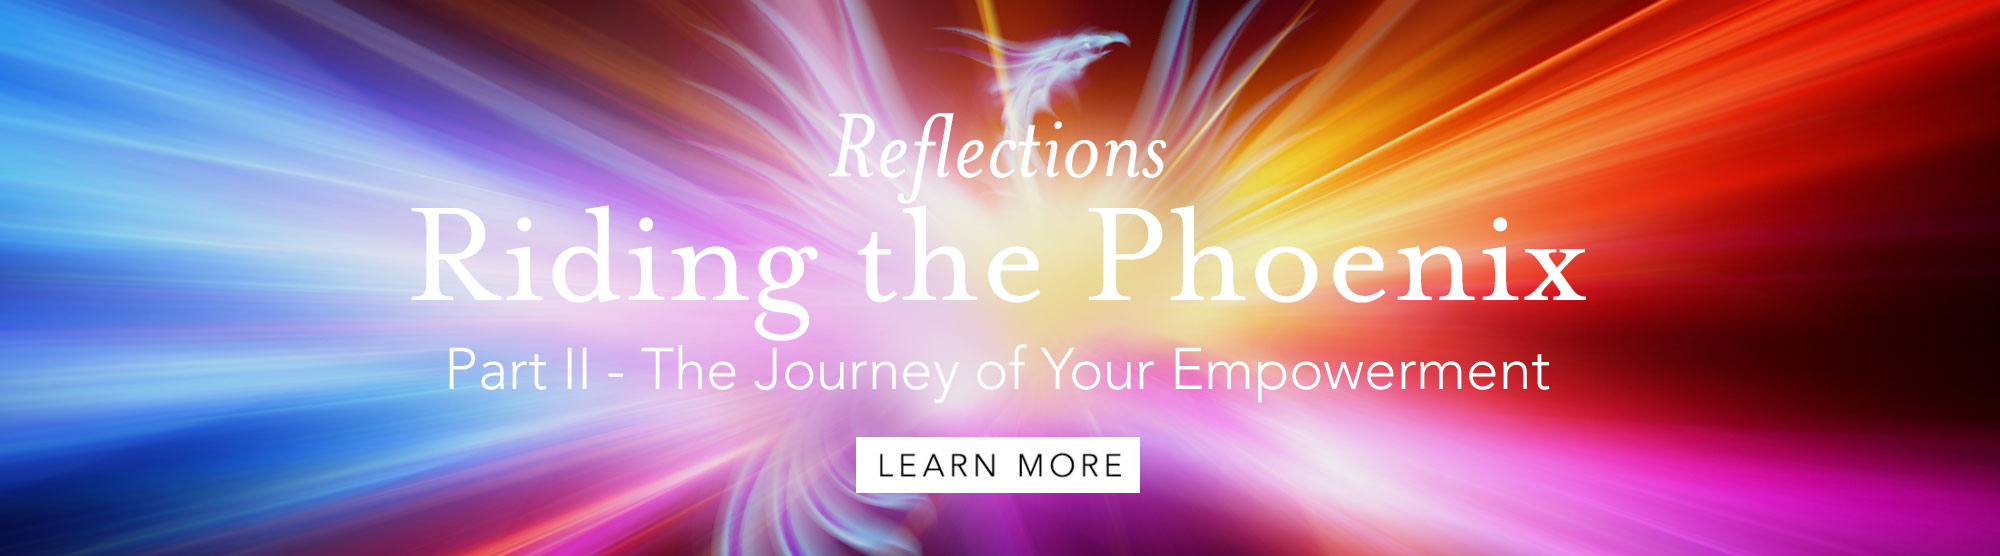 Riding the Phoenix Part II - The Journey of Your Empowerment